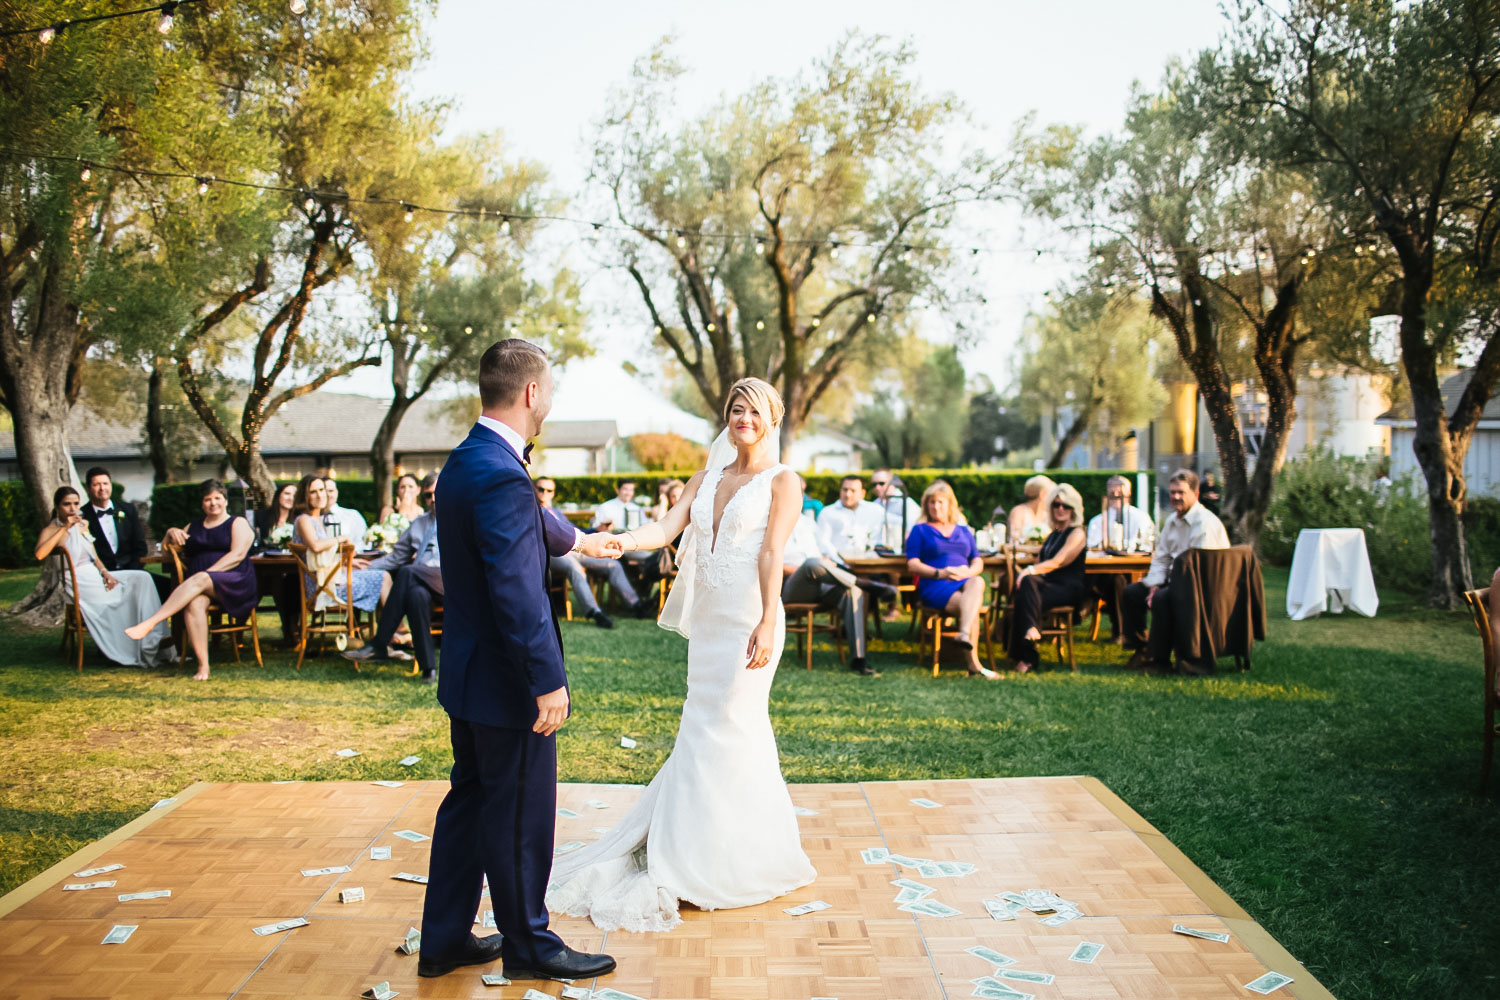 sonoma-county-wedding-photographer-grass-valley-1.jpg